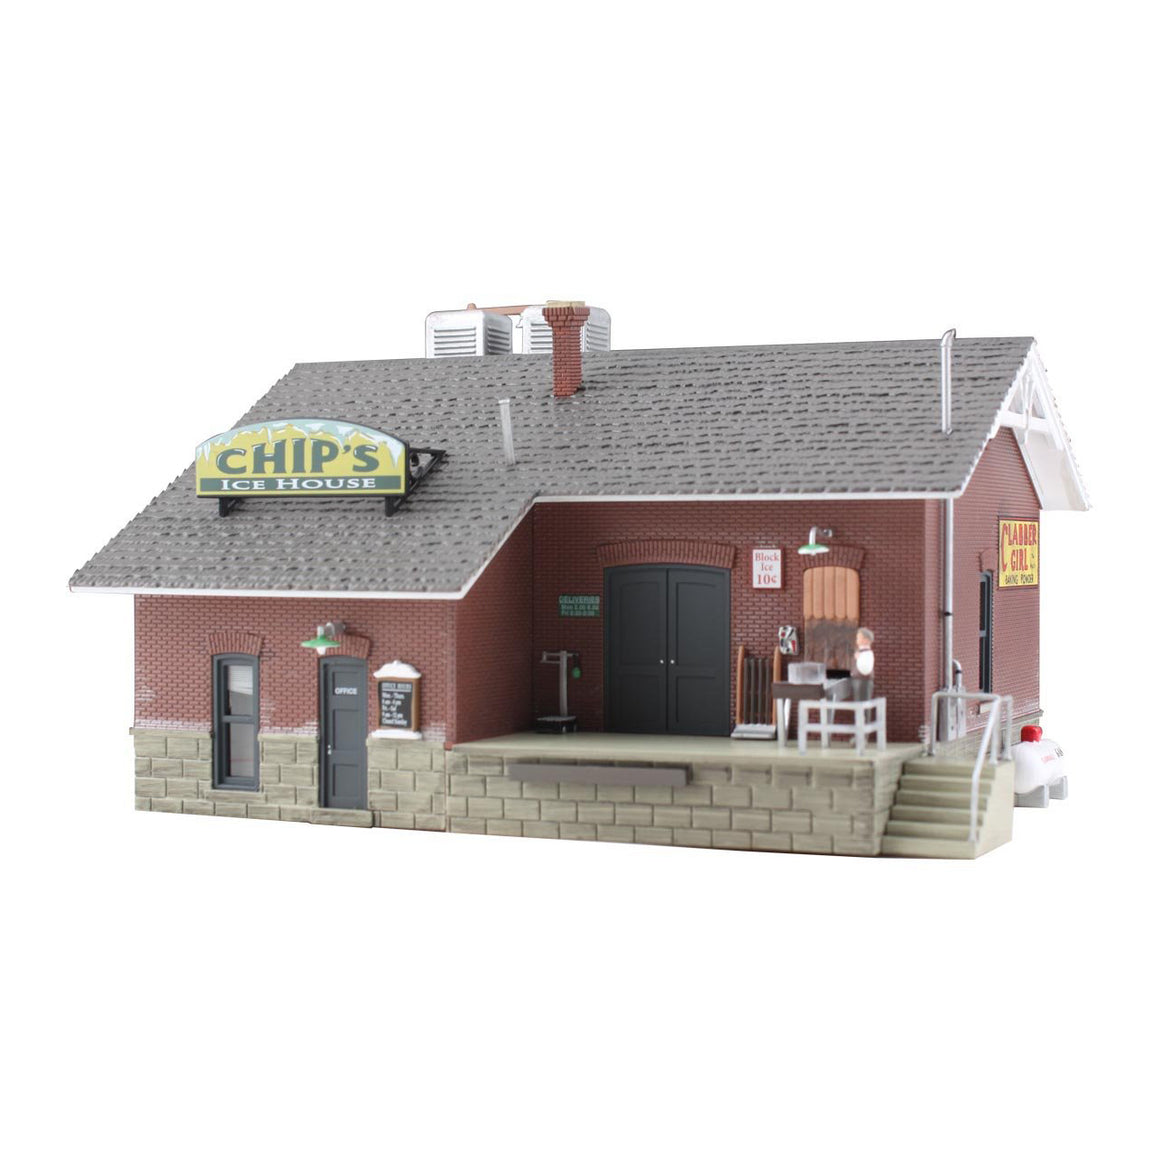 HO Scale: Chip's Ice House